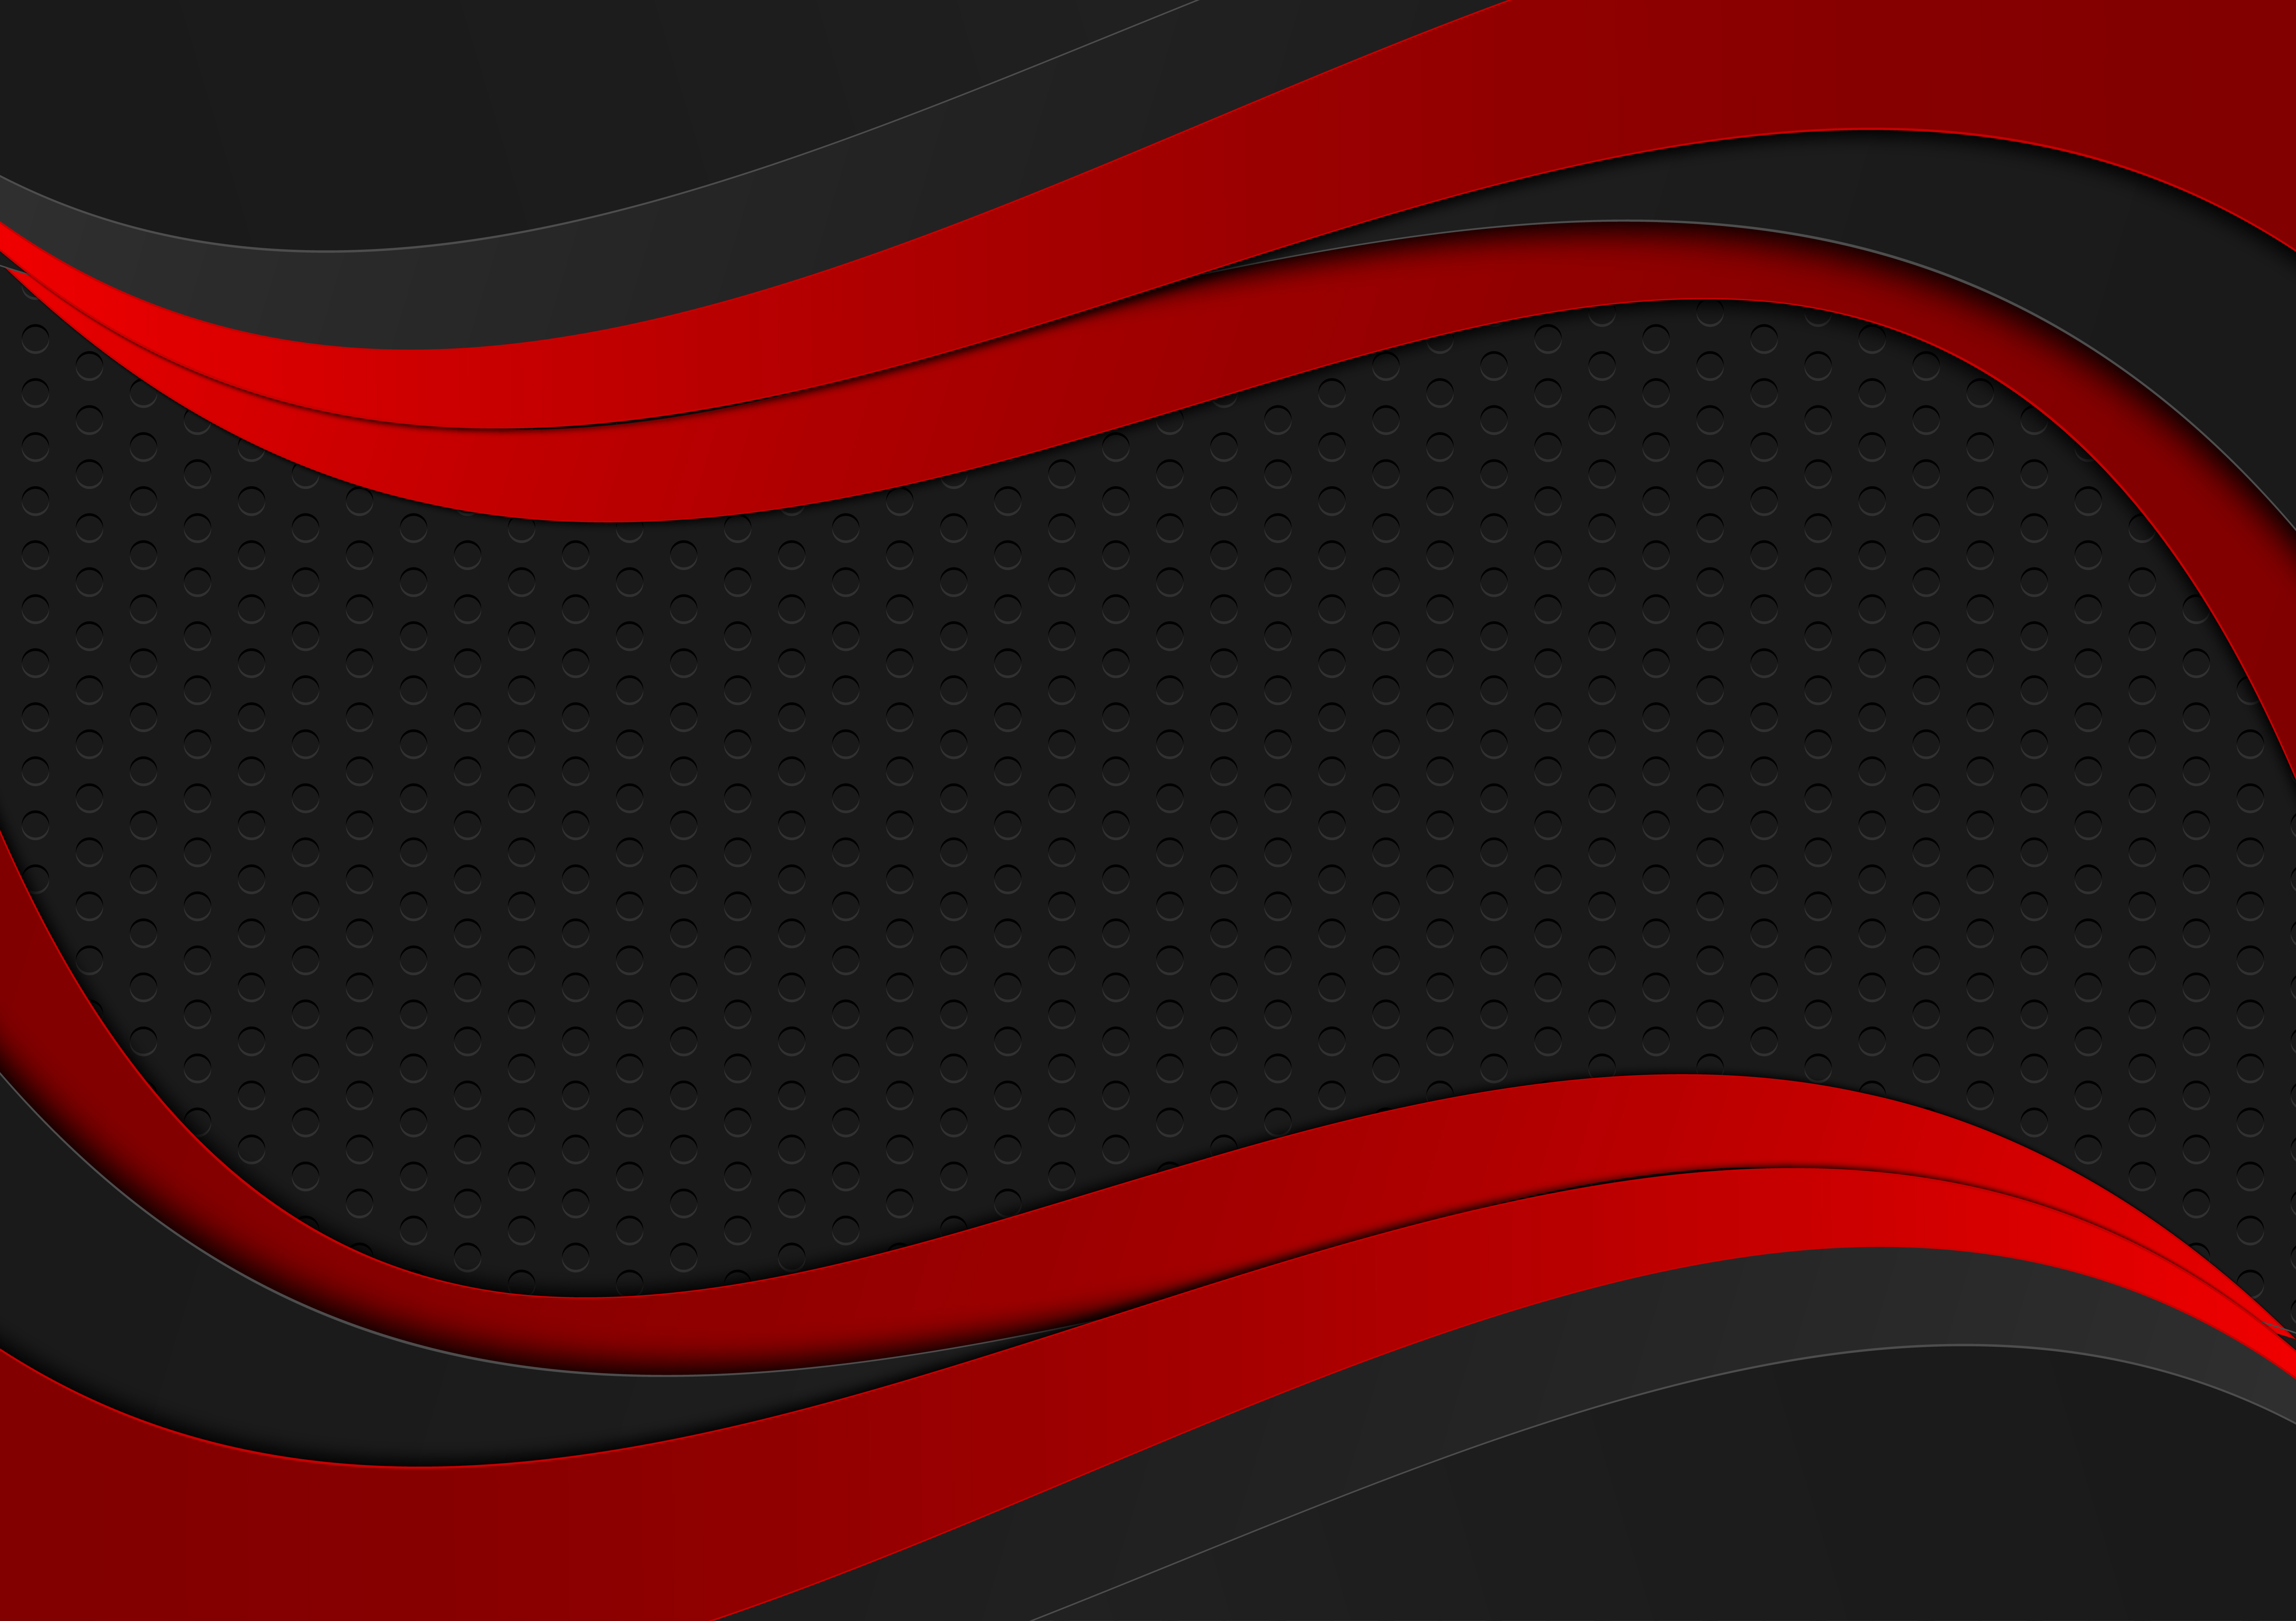 Black And Red Color Wave Geometric Texture Abstract Vector Background Download Free Vectors Clipart Graphics Vector Art